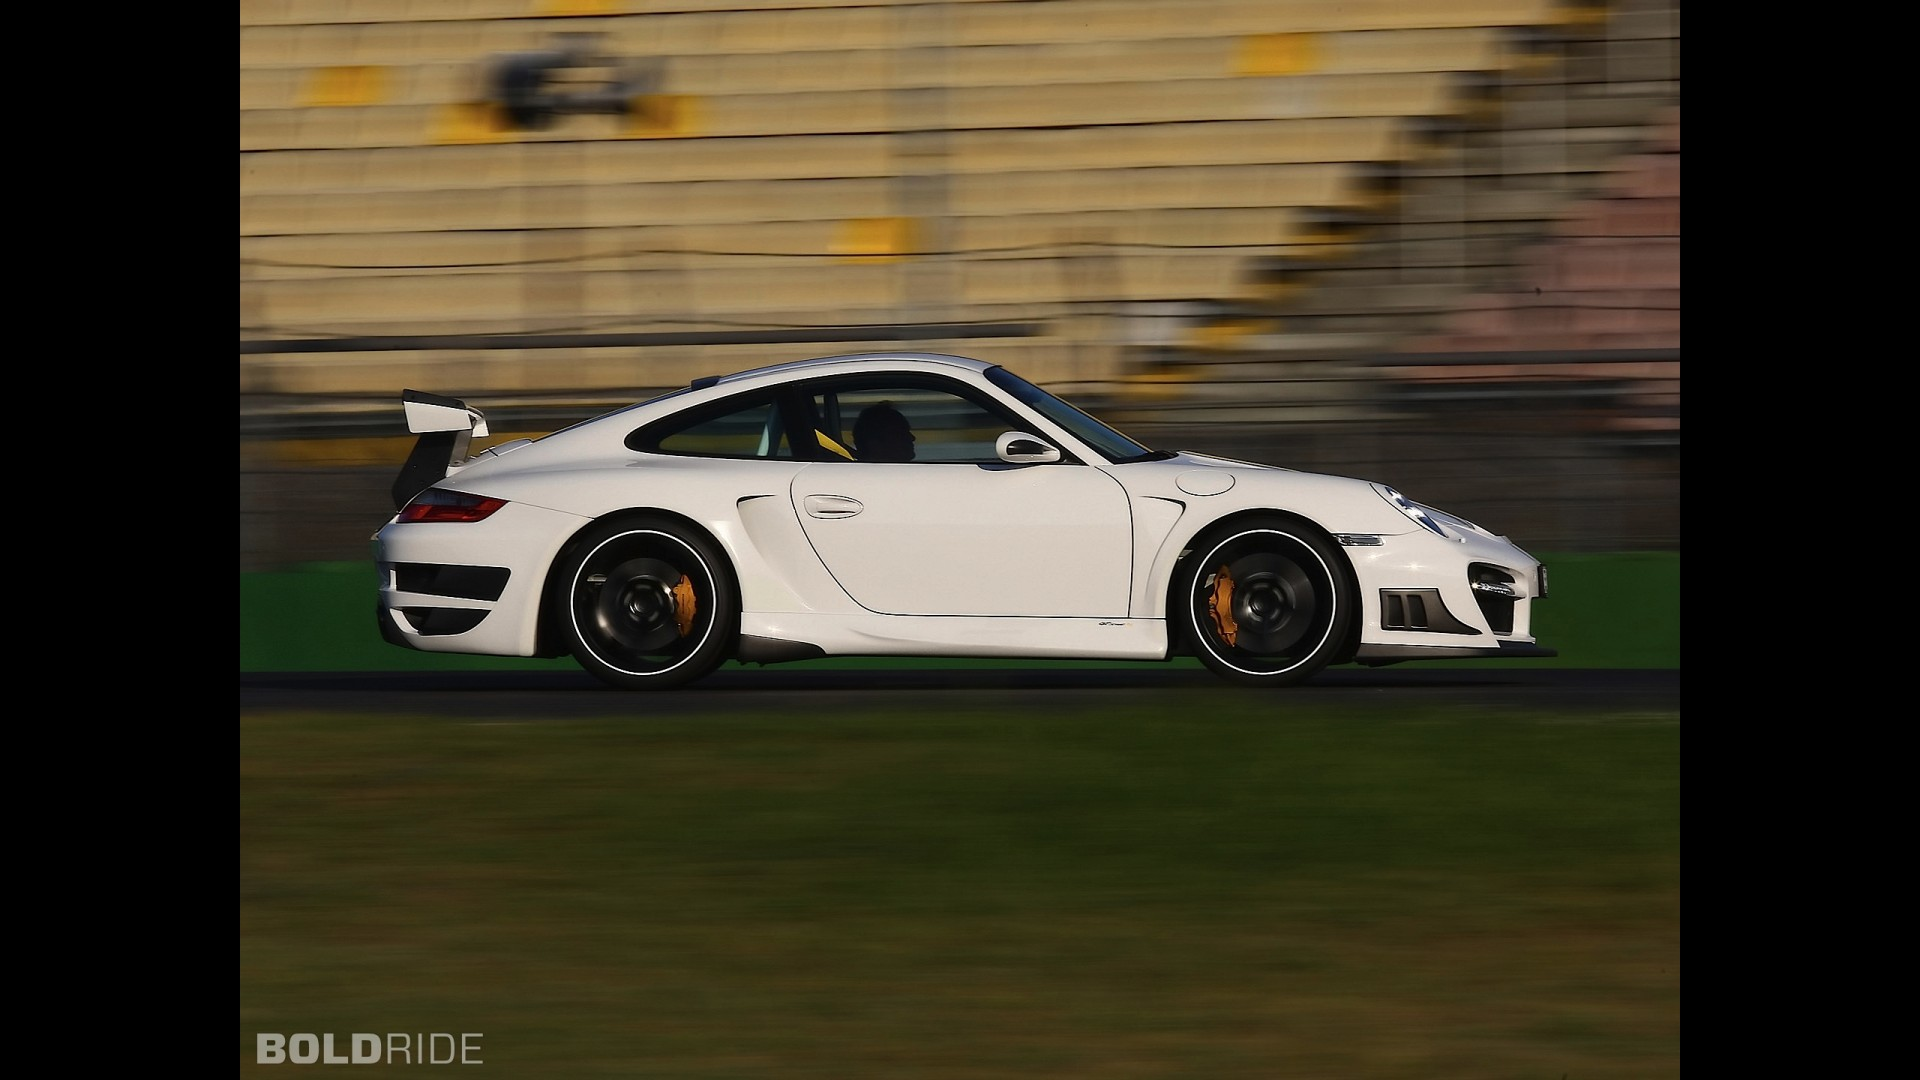 techart-porsche-911-gt2-gtstreet-rs Remarkable Techart Porsche 911 Gt2 Gtstreet Rs Cars Trend